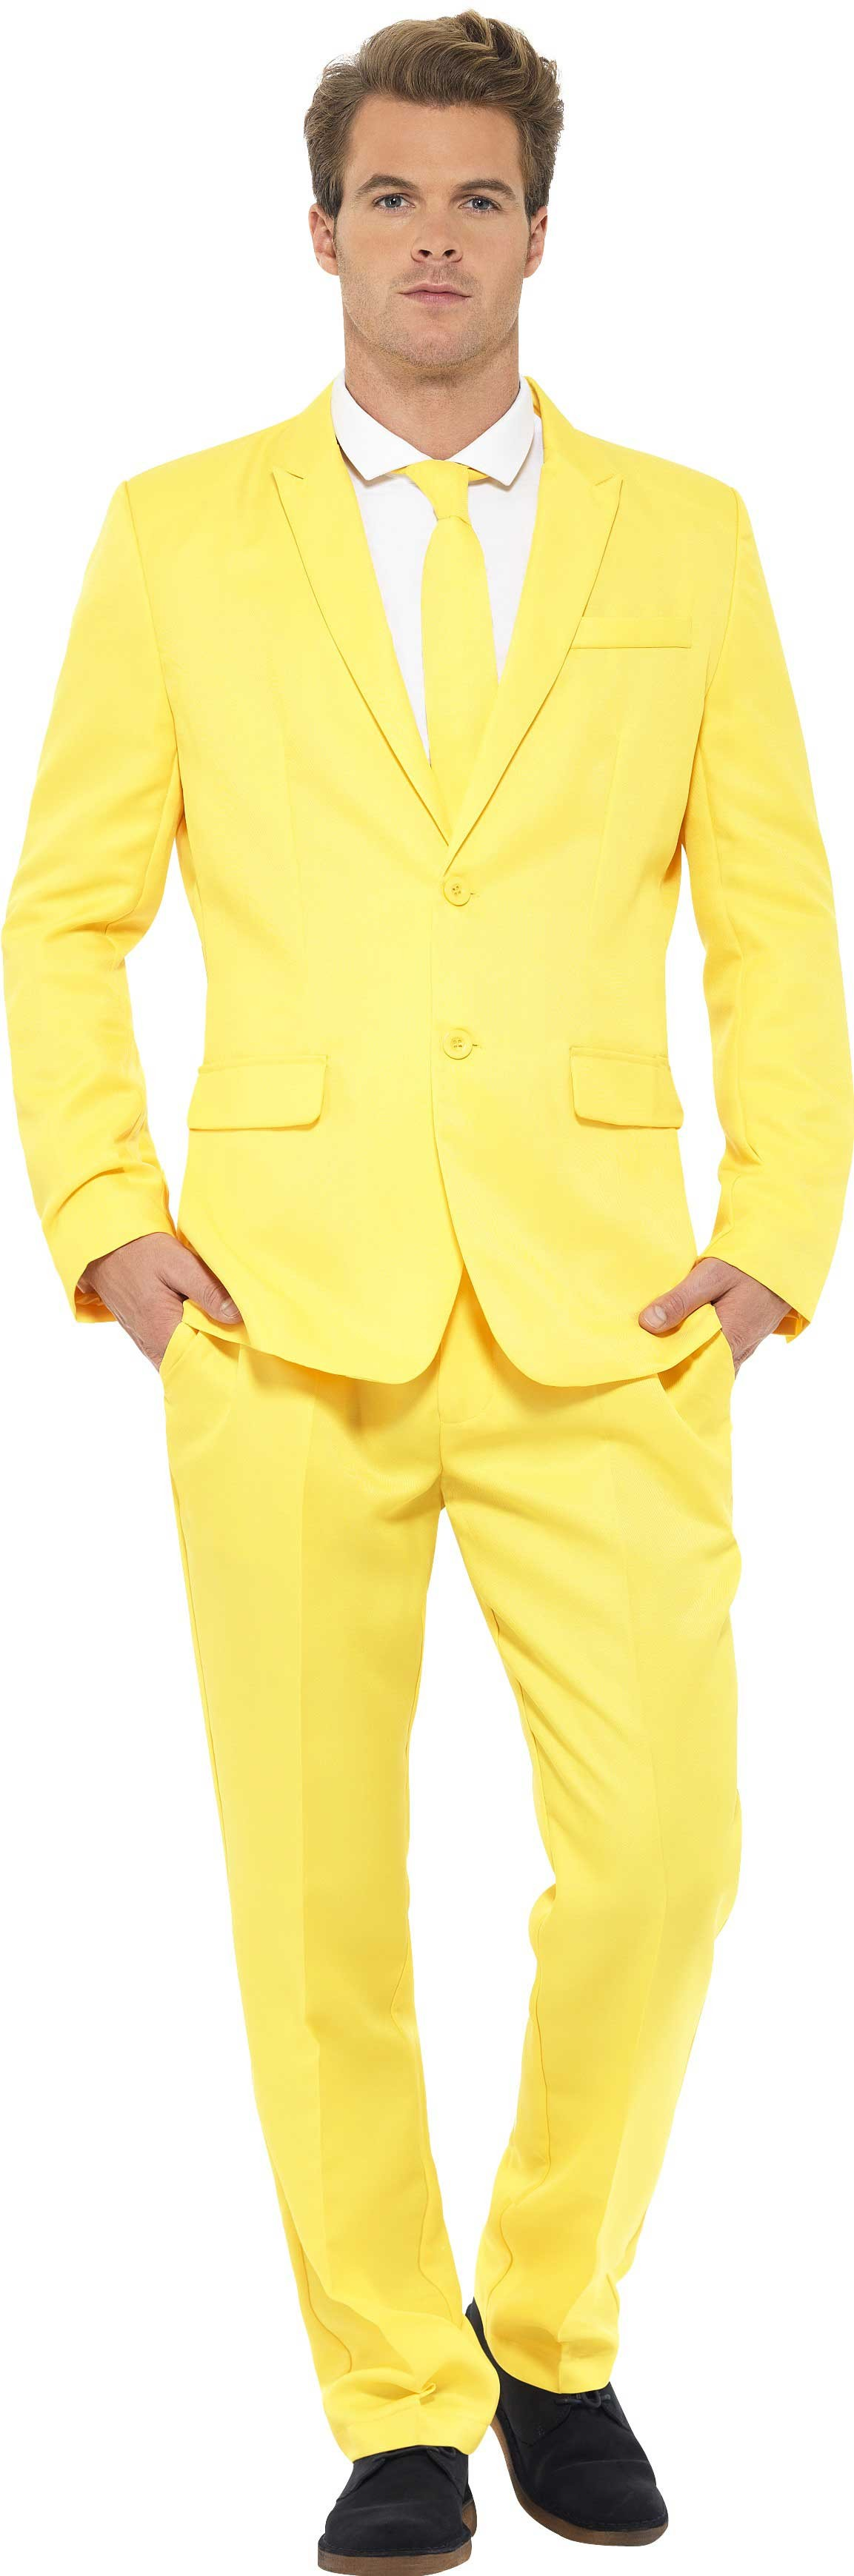 Men'S Yellow Stand Out Suit Fancy Dress Costume